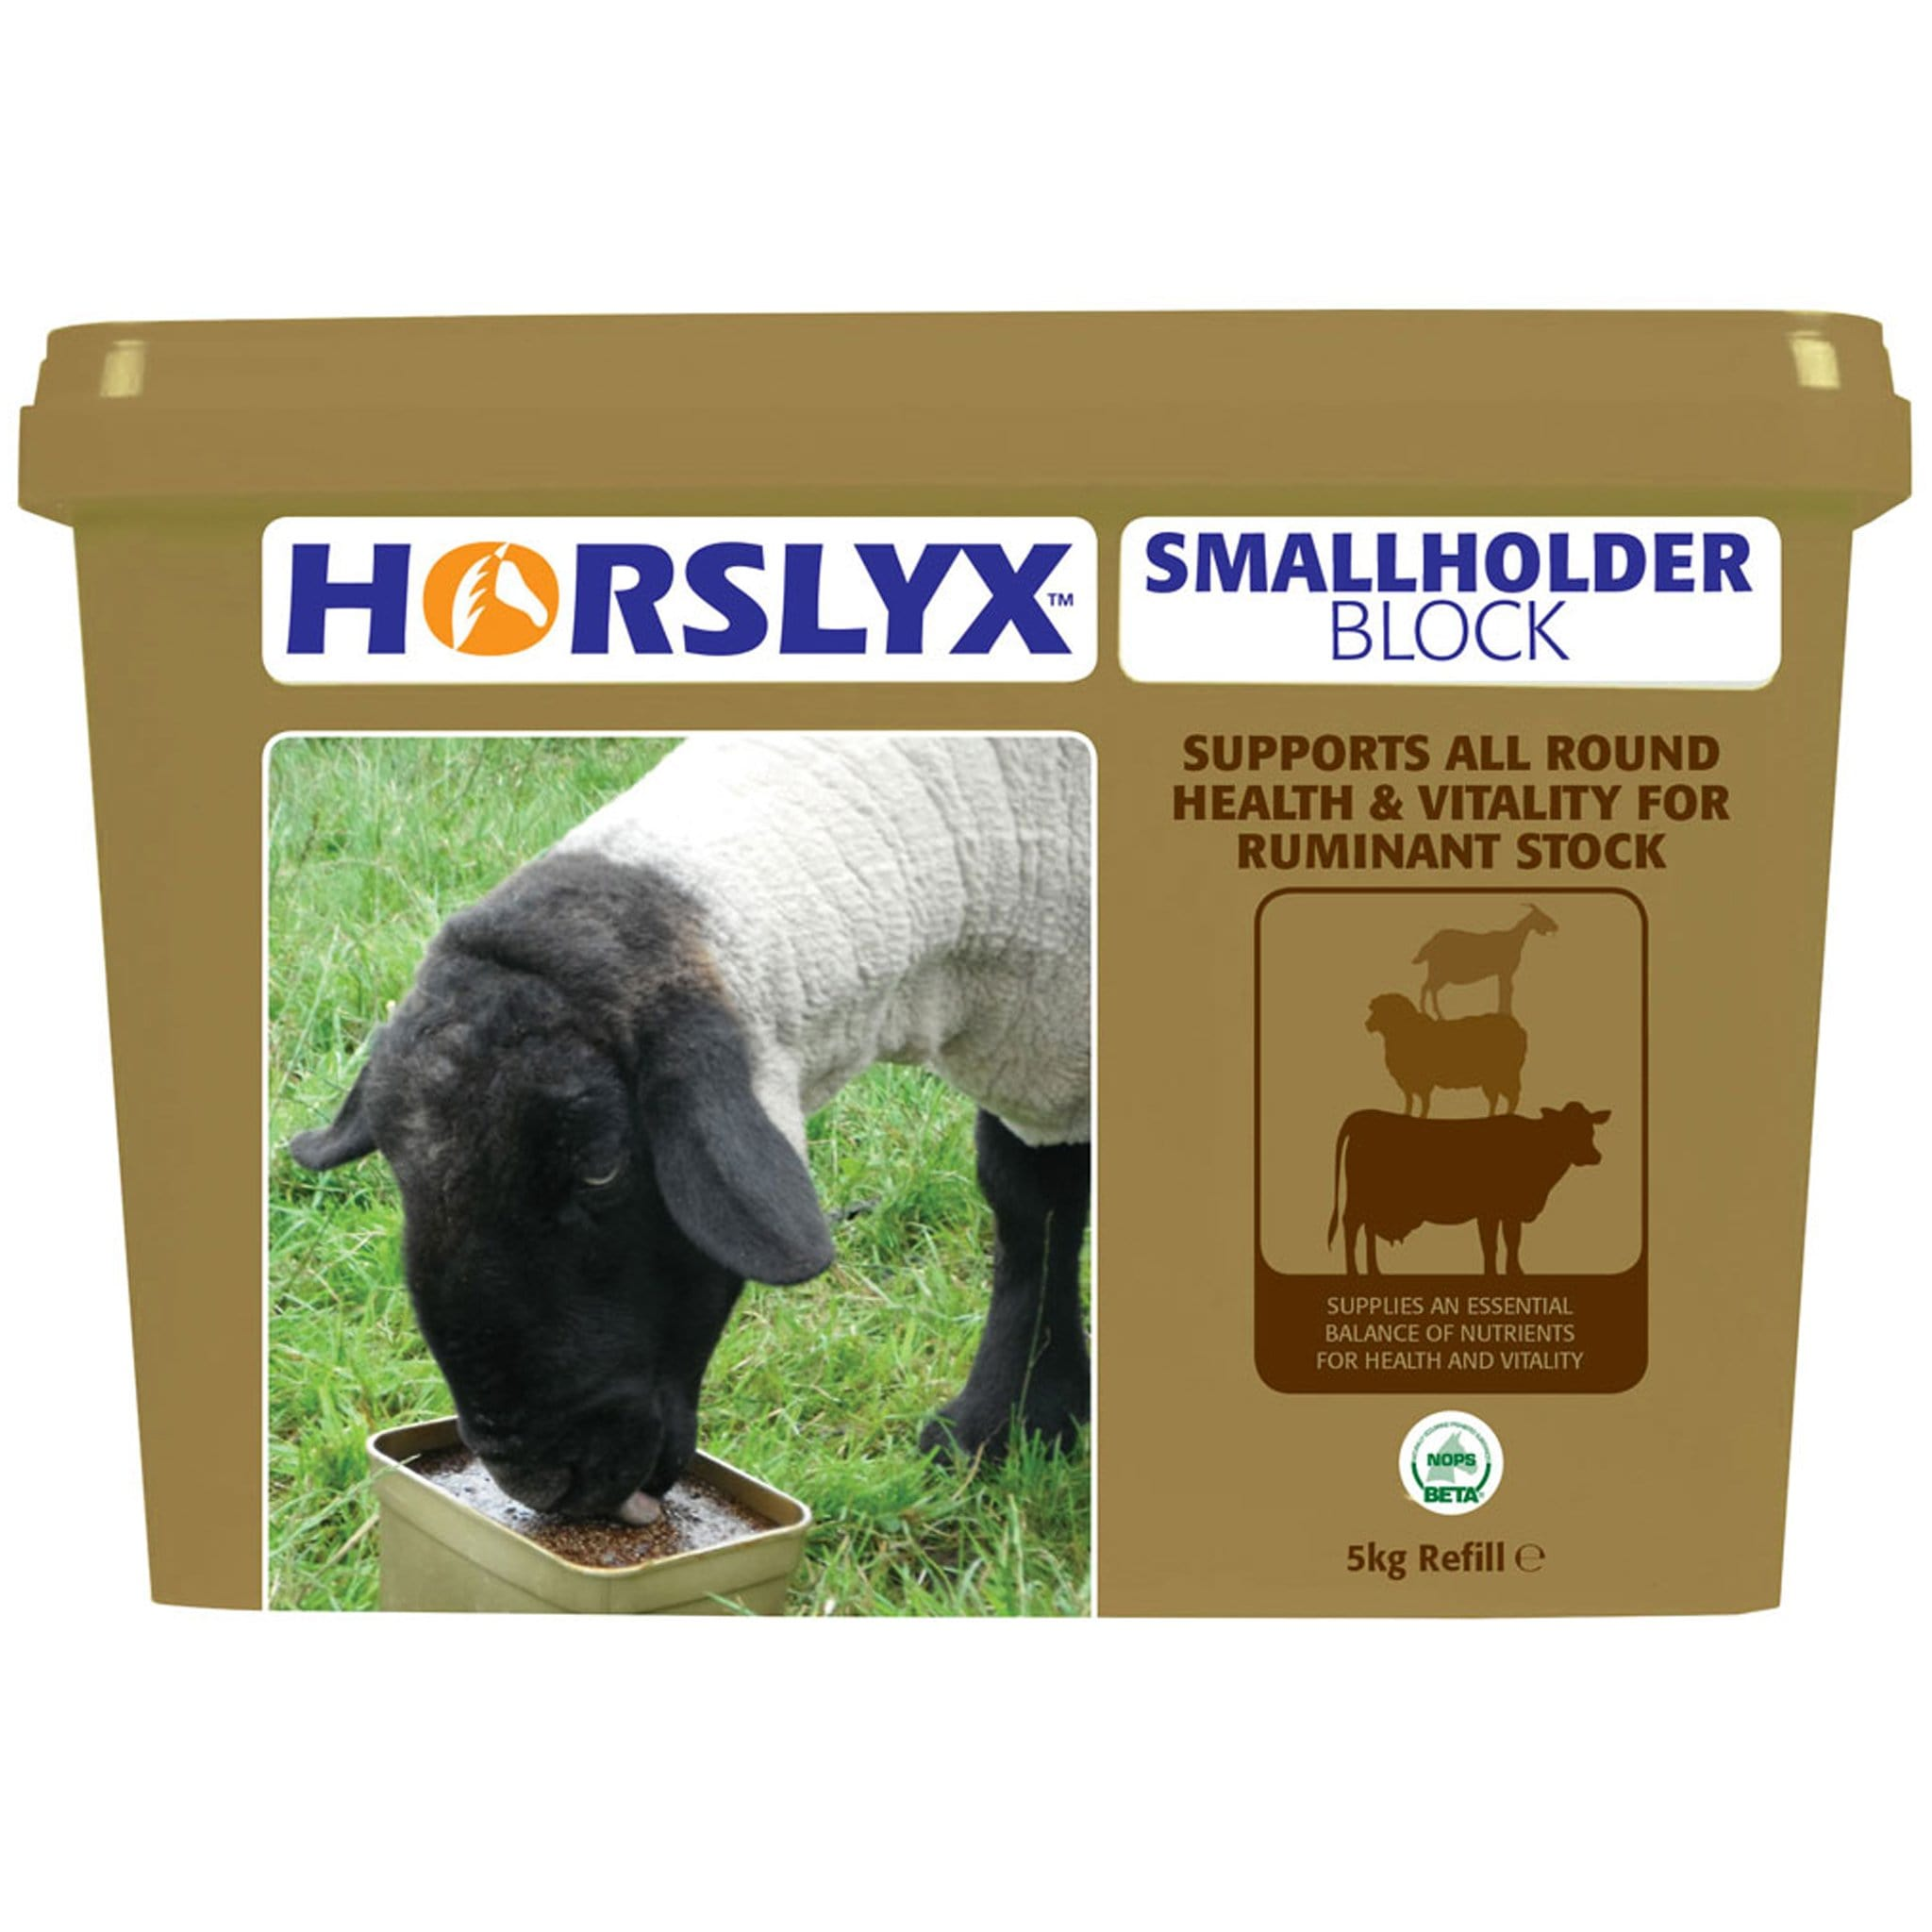 Horslyx Small Holder 20156